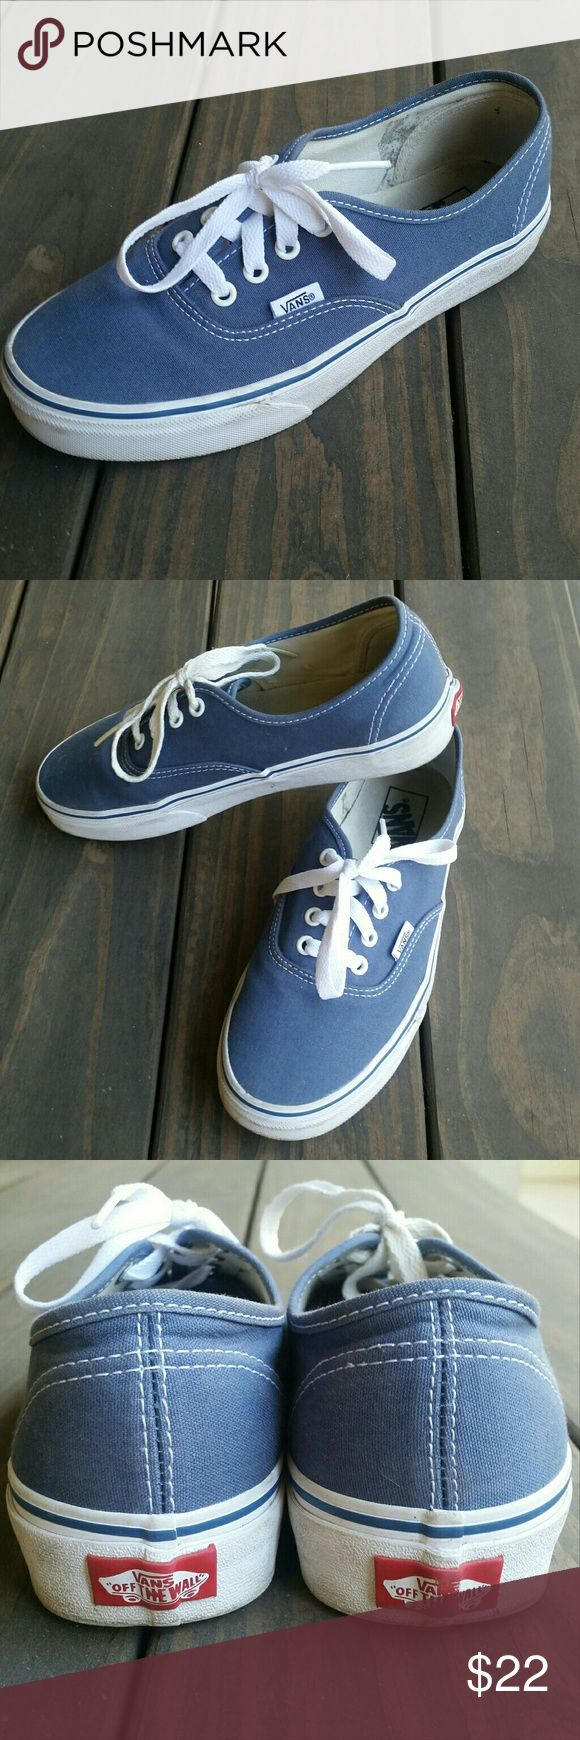 """Vans Authentic Lo Pro Skate Shoe 7.5 Vans """"The Authentic Lo Pro"""", mens 6 womens 7.5.  This sneaker is a simple low top, lace-up with a skate silhouette, has a canvas upper, metal eyelets, Vans flag label and low profile gum waffle sole.   Very good condition, worn maybe 5x in a casual setting (meaning I didn't go skate or do anything active in them). I'm just not really a sneaker girl. Pristine soles. Vans Shoes Athletic Shoes"""